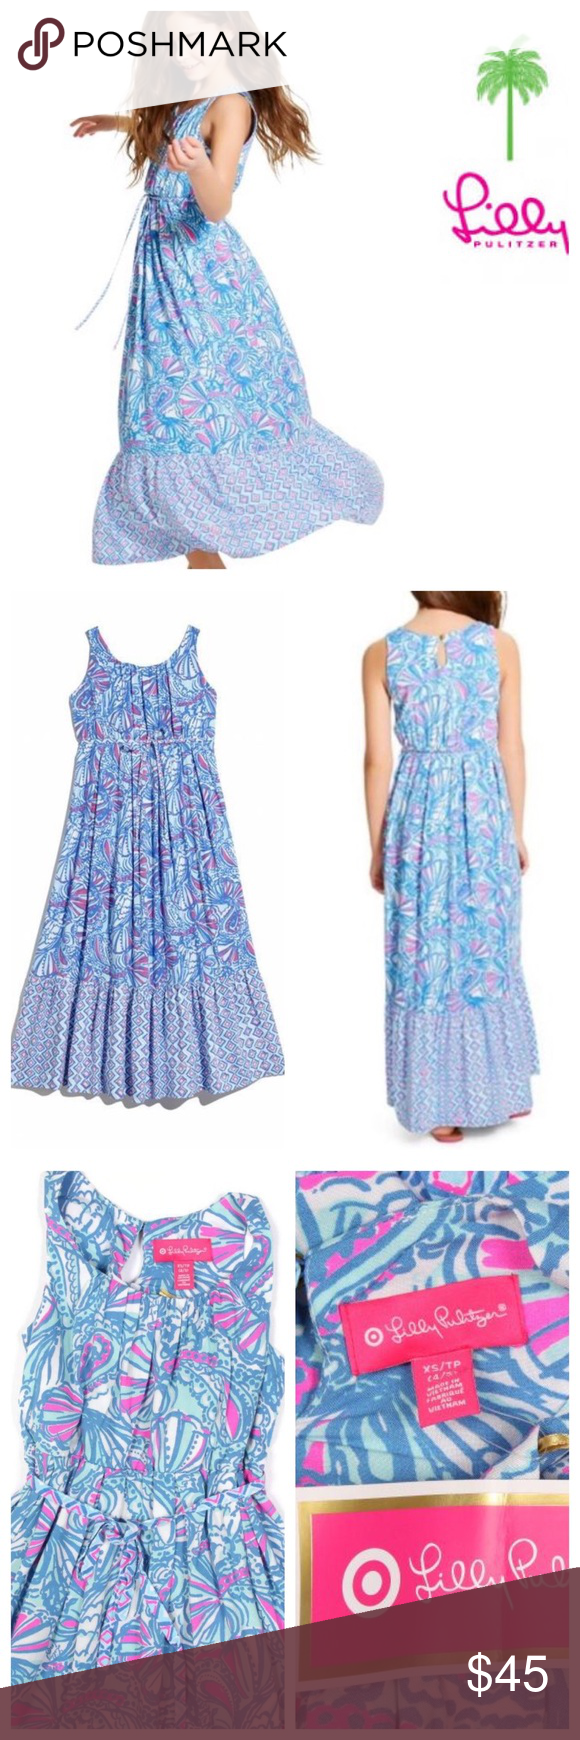 NWT LILLY PULITZER Target blue Maxi DRESS XS 4 5 Sold out and sooo adorable! LILLY PULITZER for Target MY FANS Maxi DRESS in a size XS 4 5      Brand: LILLY PULITZER    Size:  XS / 4 5     Condition:  New with Tags Lilly Pulitzer for Target Dresses Casual